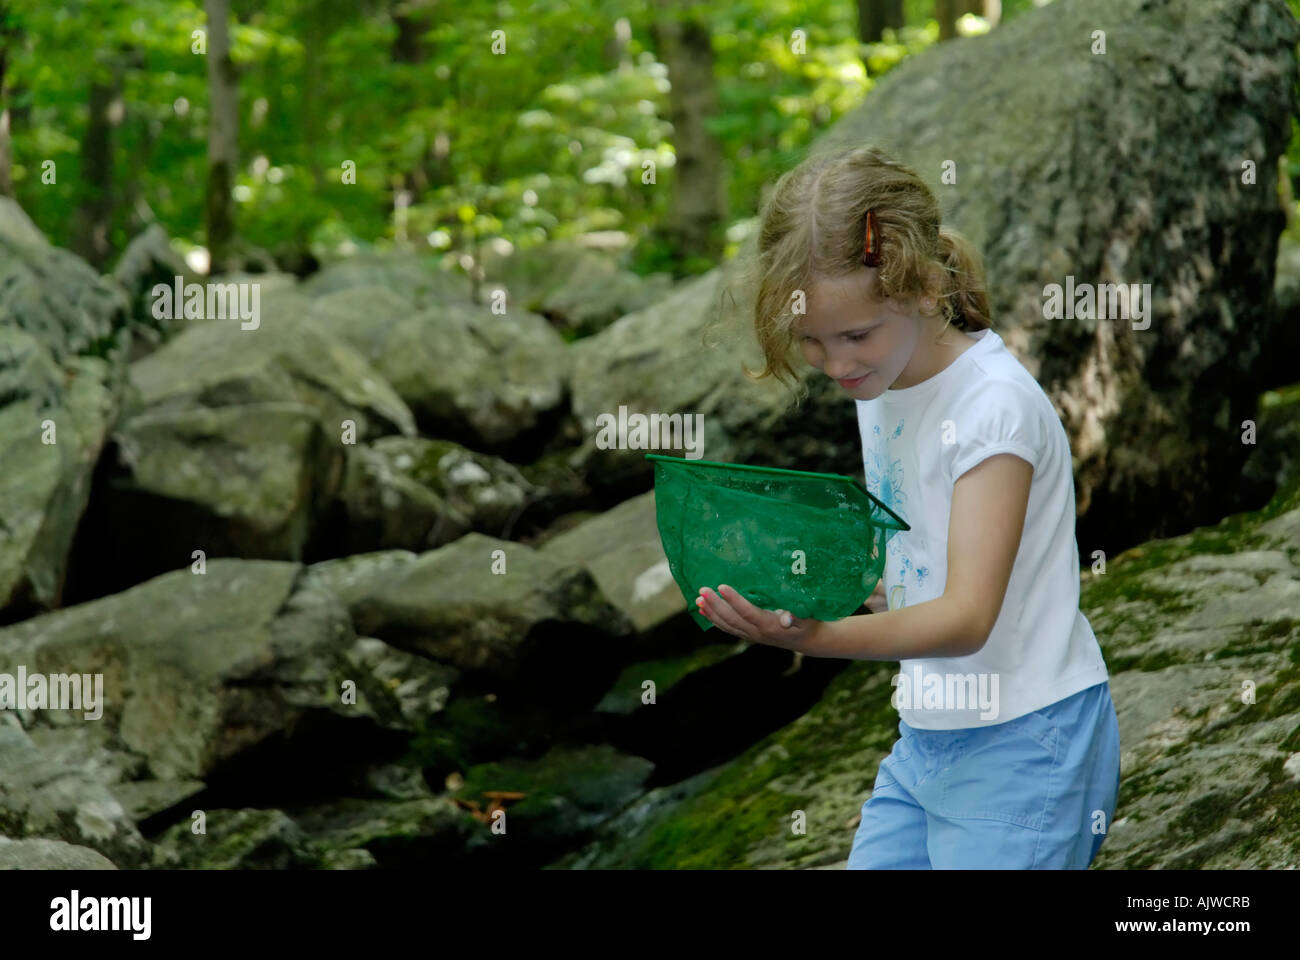 Young girl looking in net for aquatic animals at a stream - Stock Image